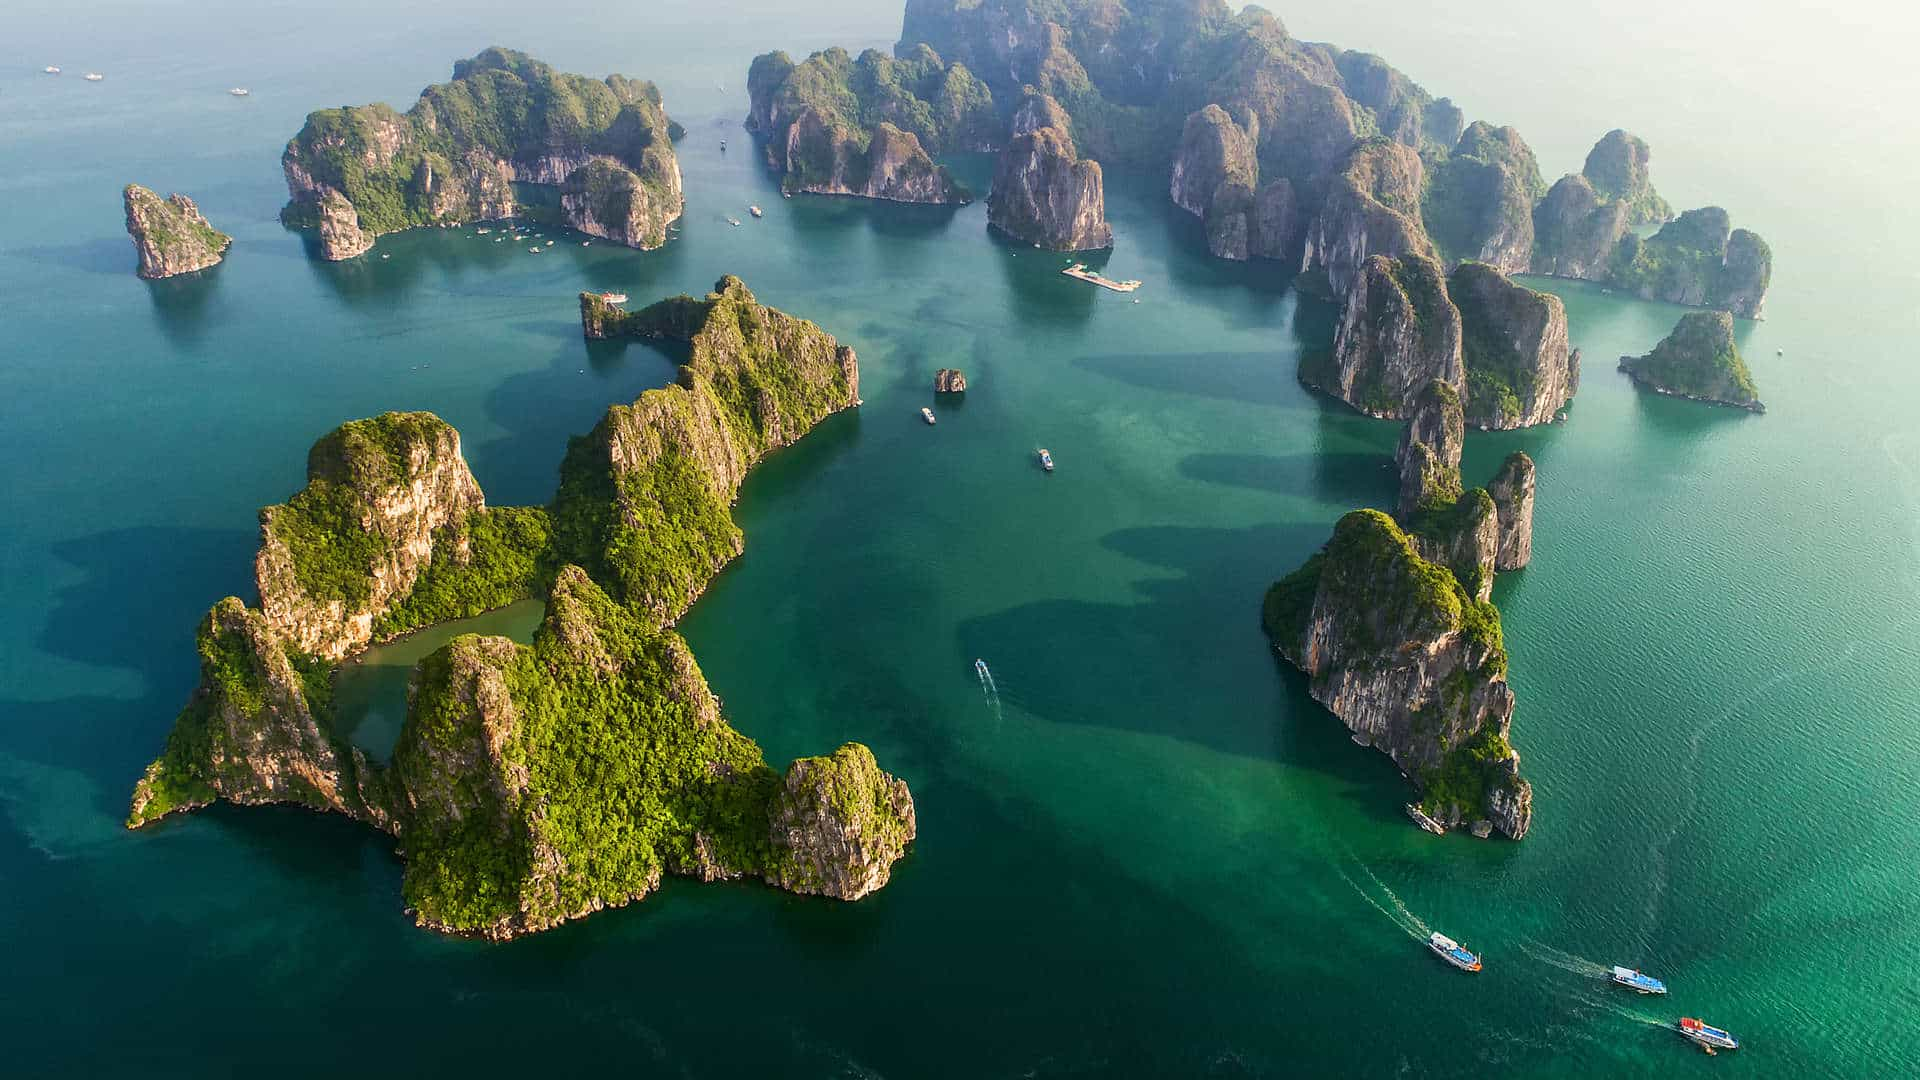 Halong Bay Vietnam aereal view